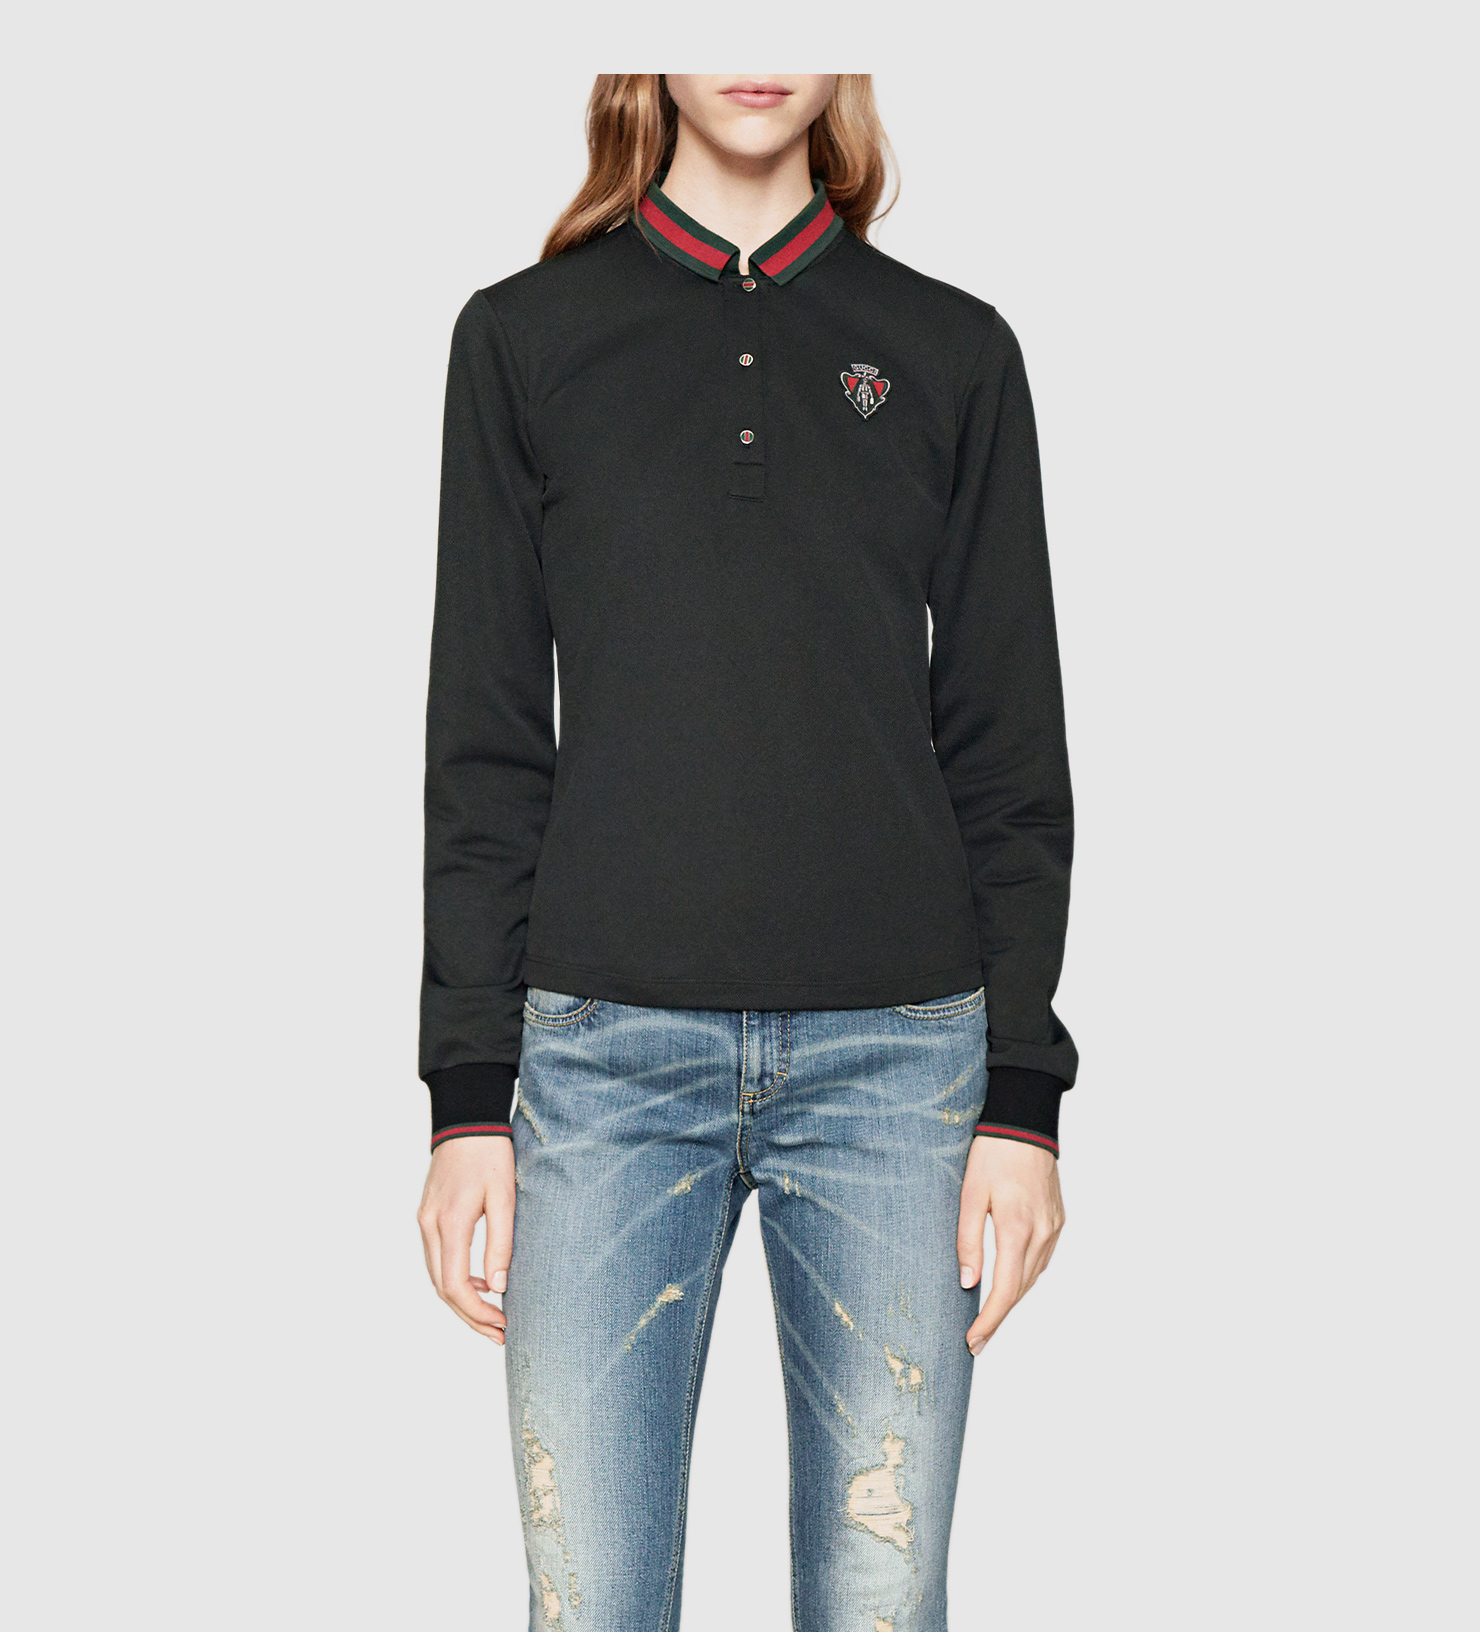 b80361d79c9 Lyst - Gucci Black Long Sleeve Polo With Small Crest From Equestrian ...